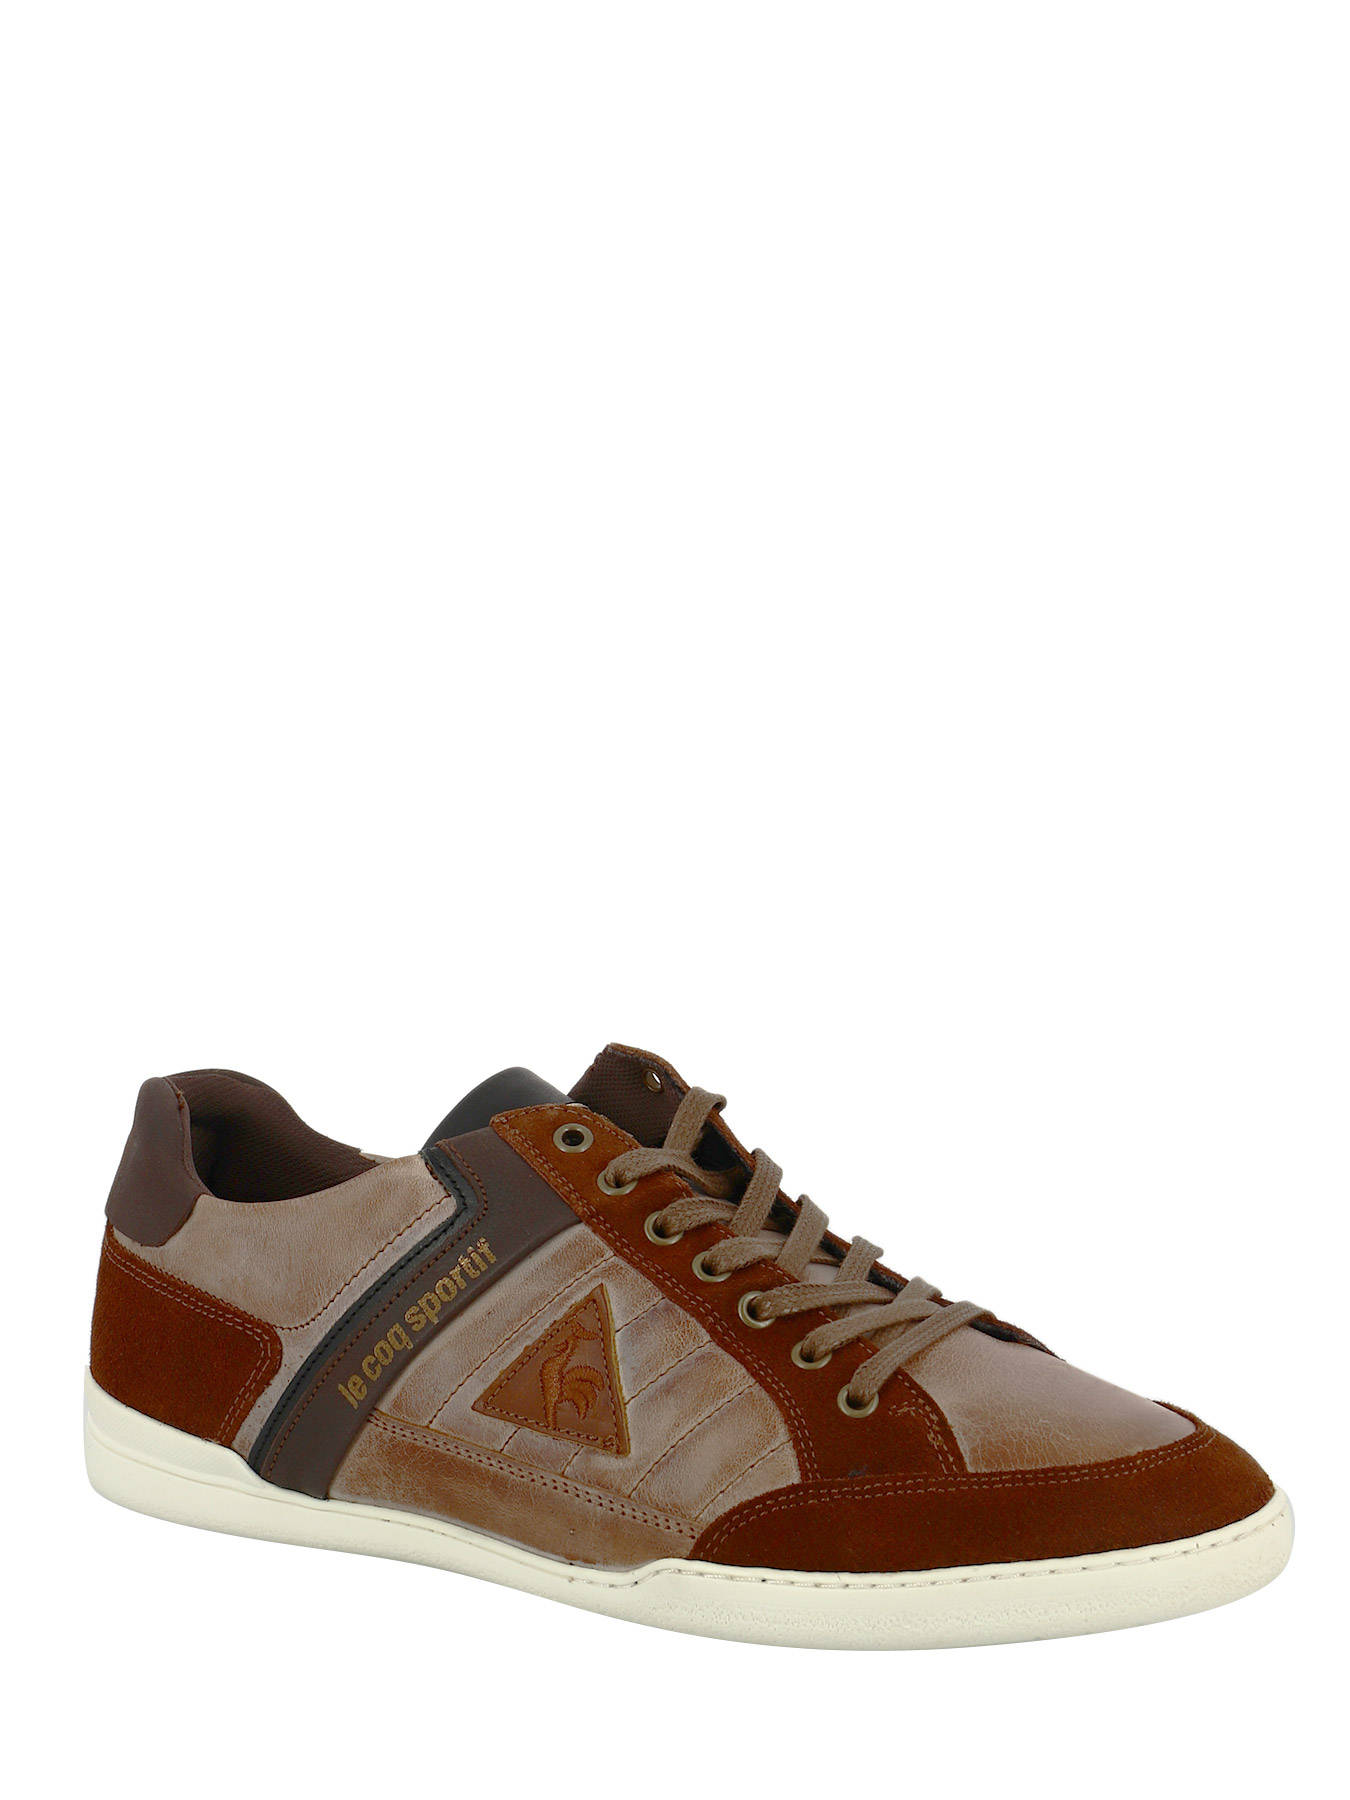 outlet store a8fa9 6db1a Le Coq Sportif Sneakers ALSCE LOW B LEA - best prices